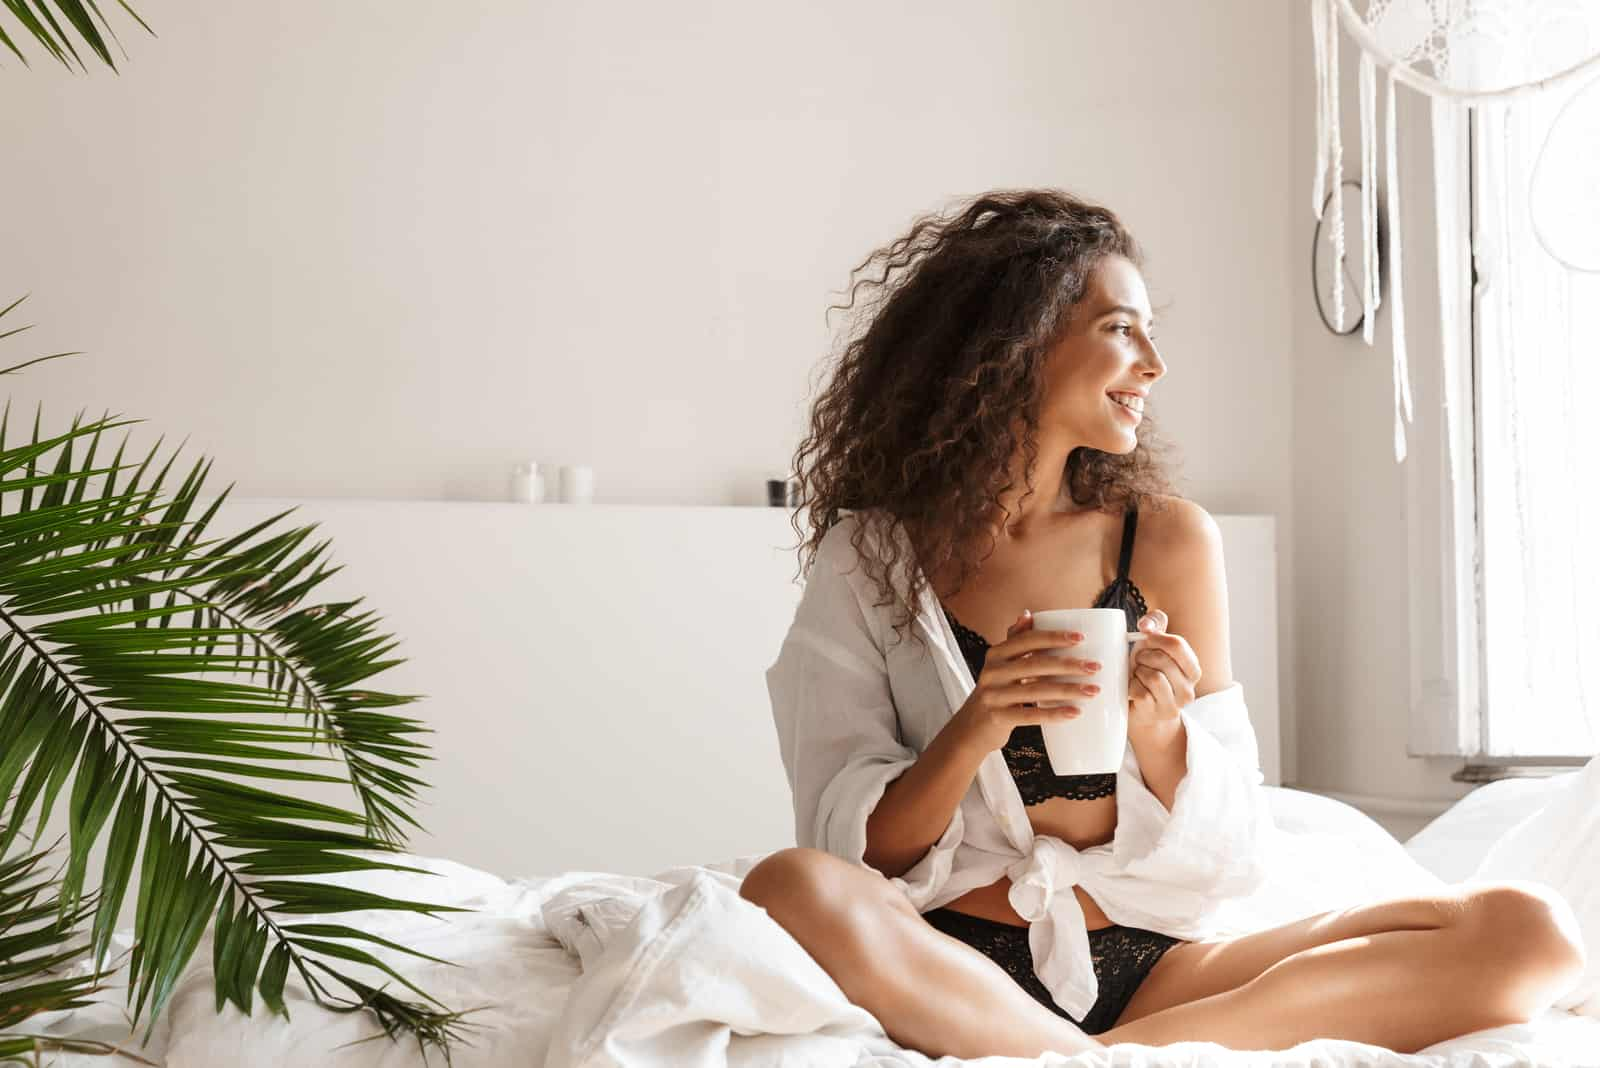 a beautiful woman with frizzy hair sits on the bed and drinks coffee